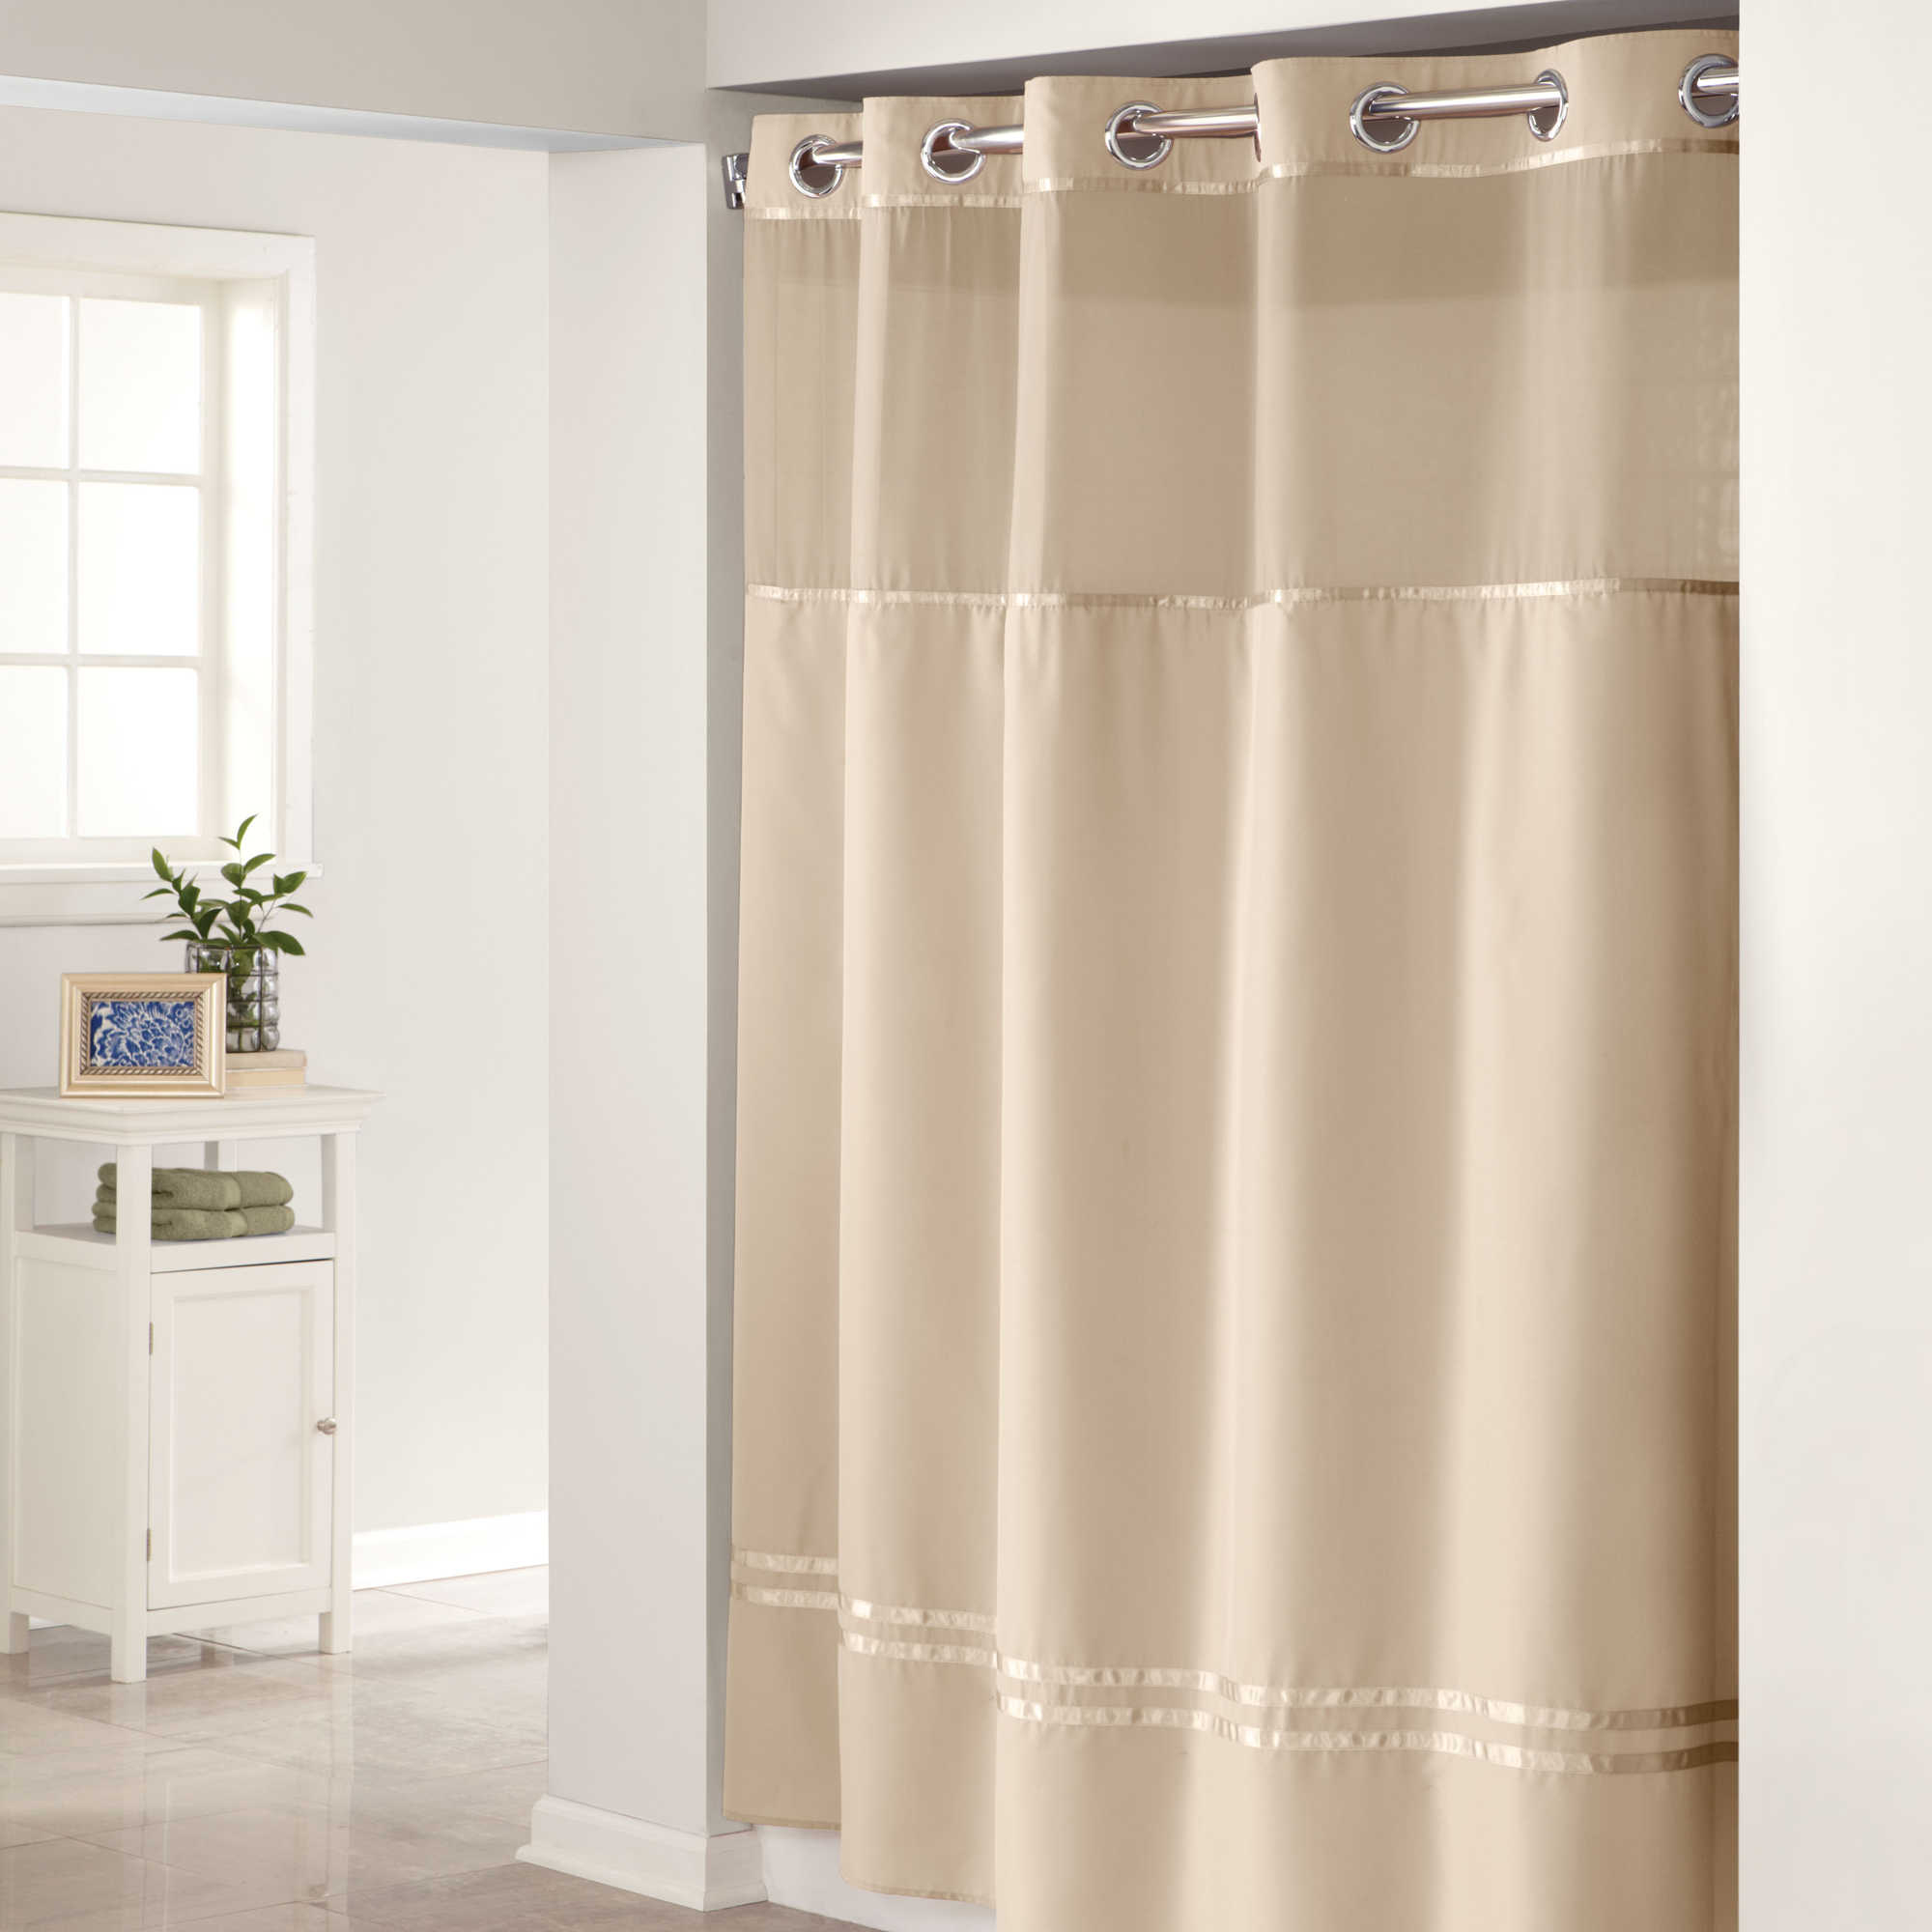 The Hookless Shower Curtain Home Design Ideas for measurements 2000 X 2000